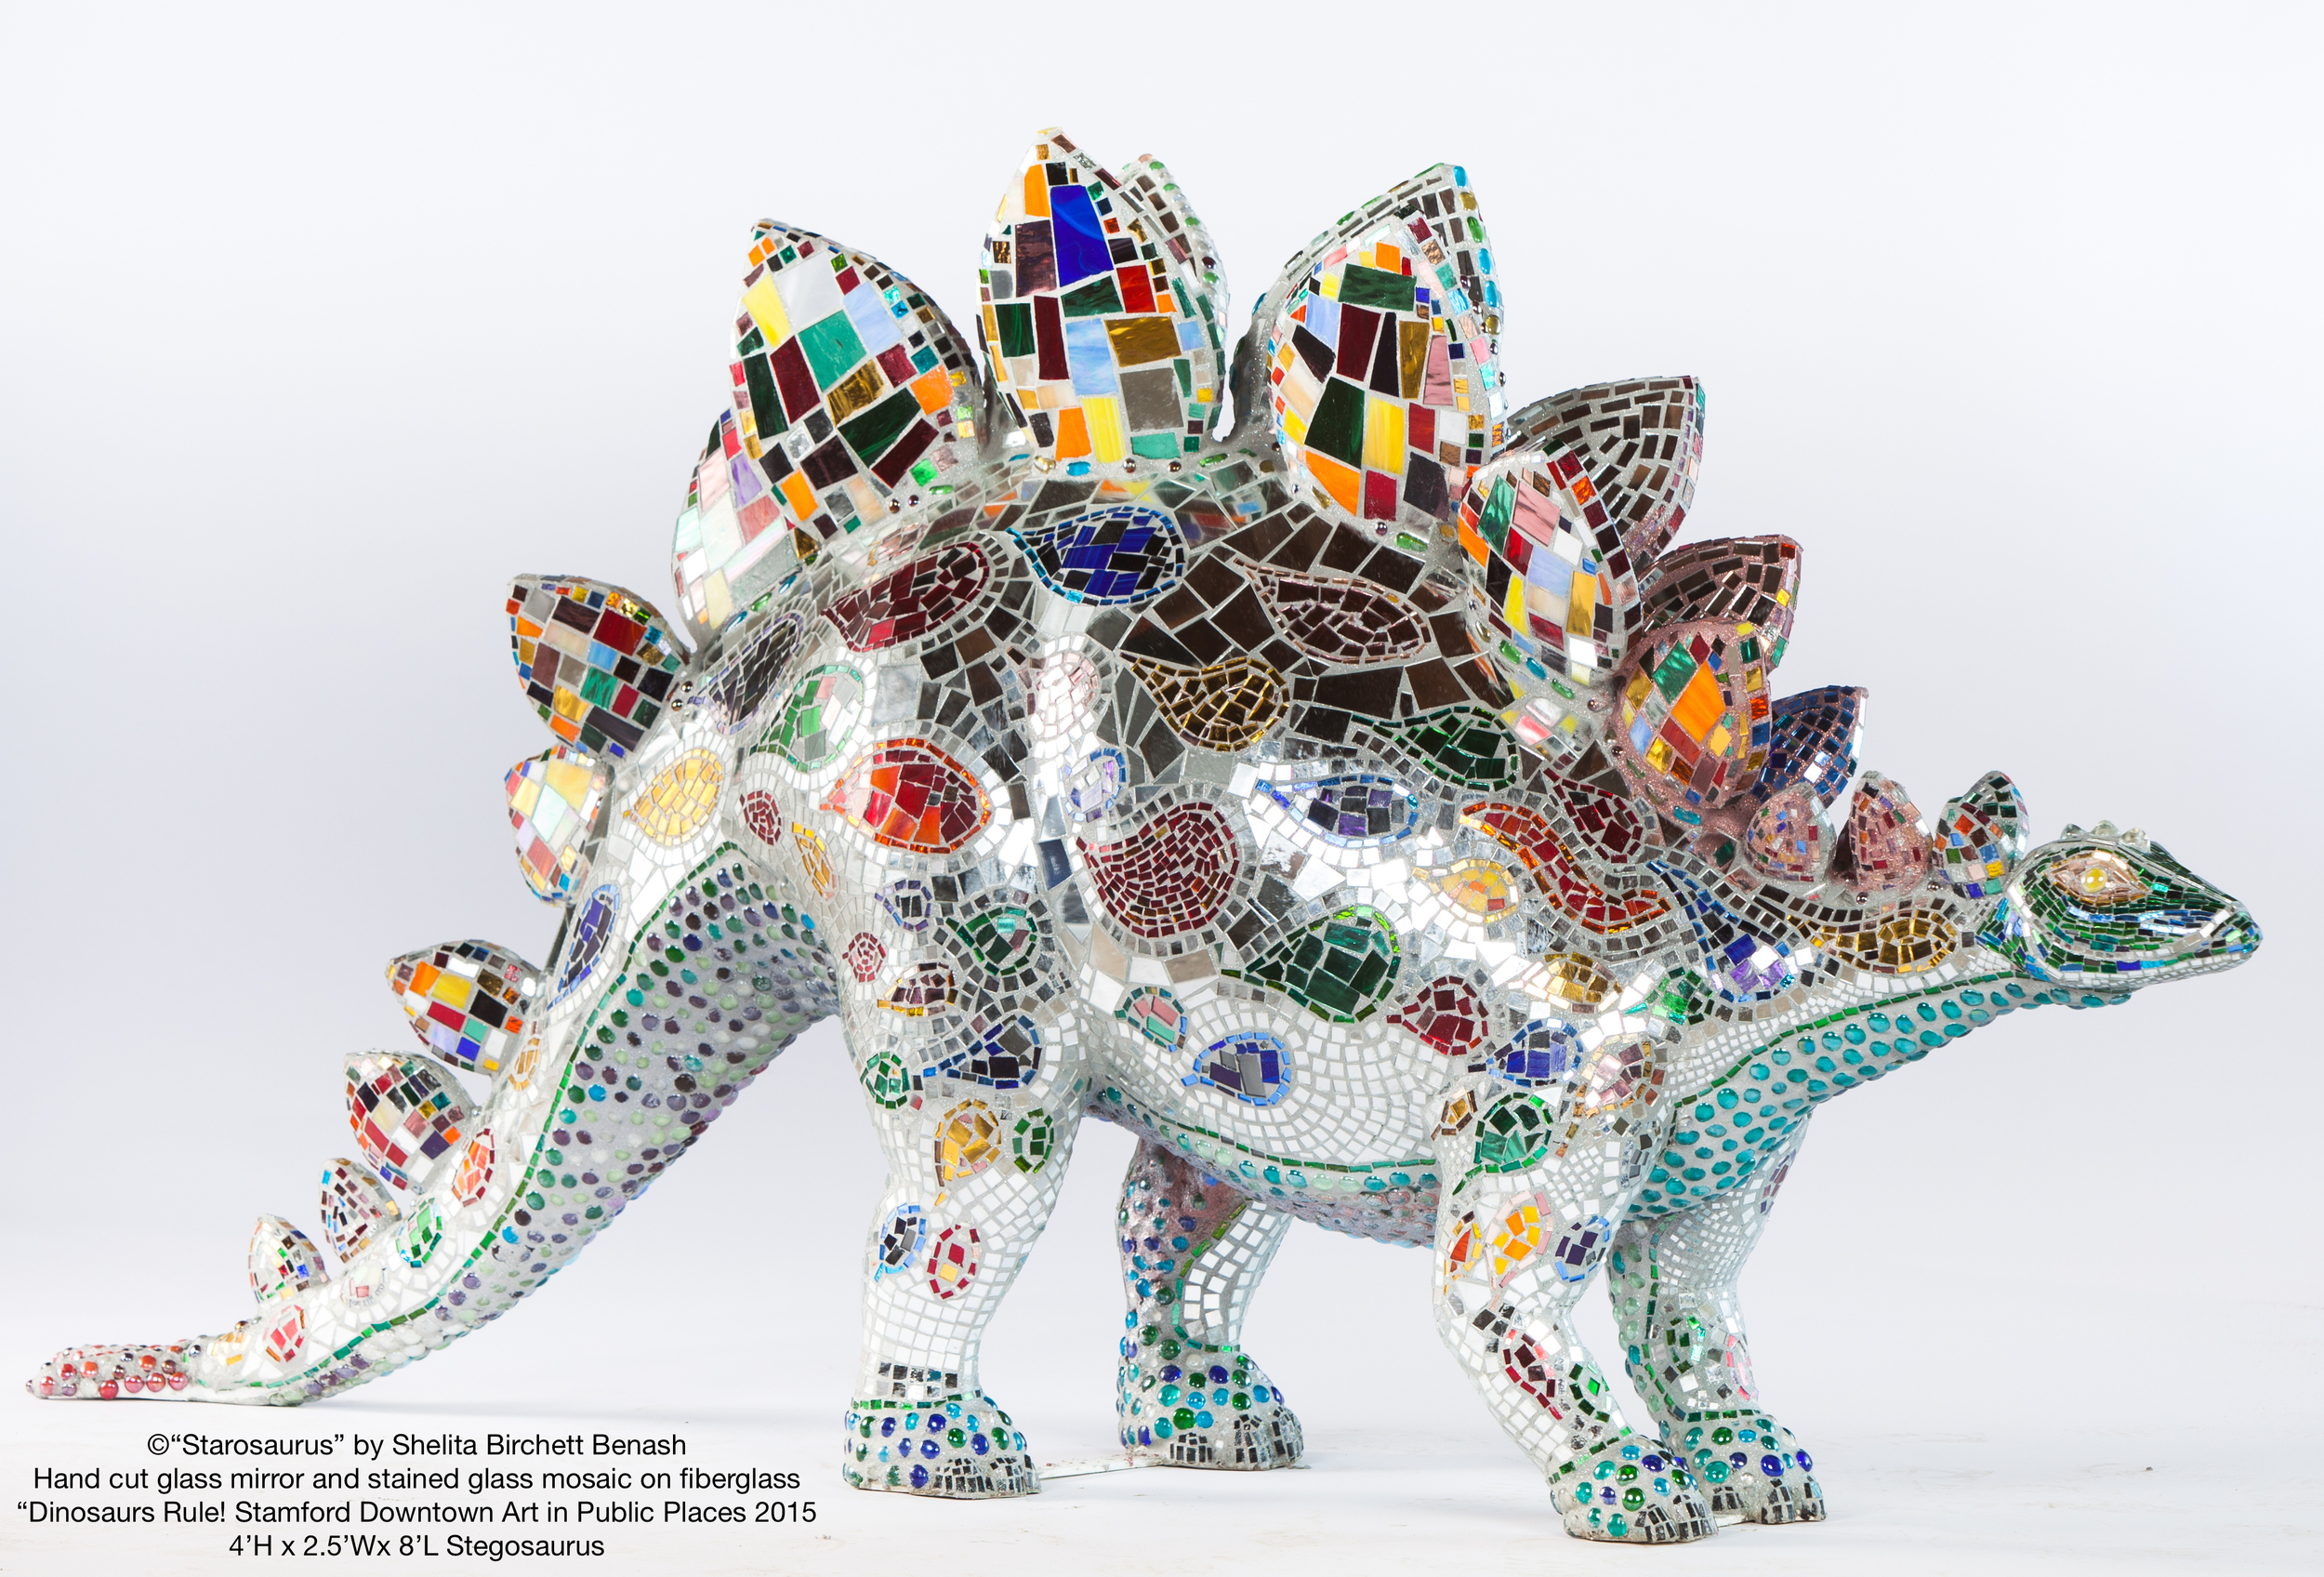 Dinosaurs Rule! Stamford Downtown Art in public Places Starosaurus glass mirror and stained glass mosaic by Shelita Birchett Benash 2015 Stegosaurus